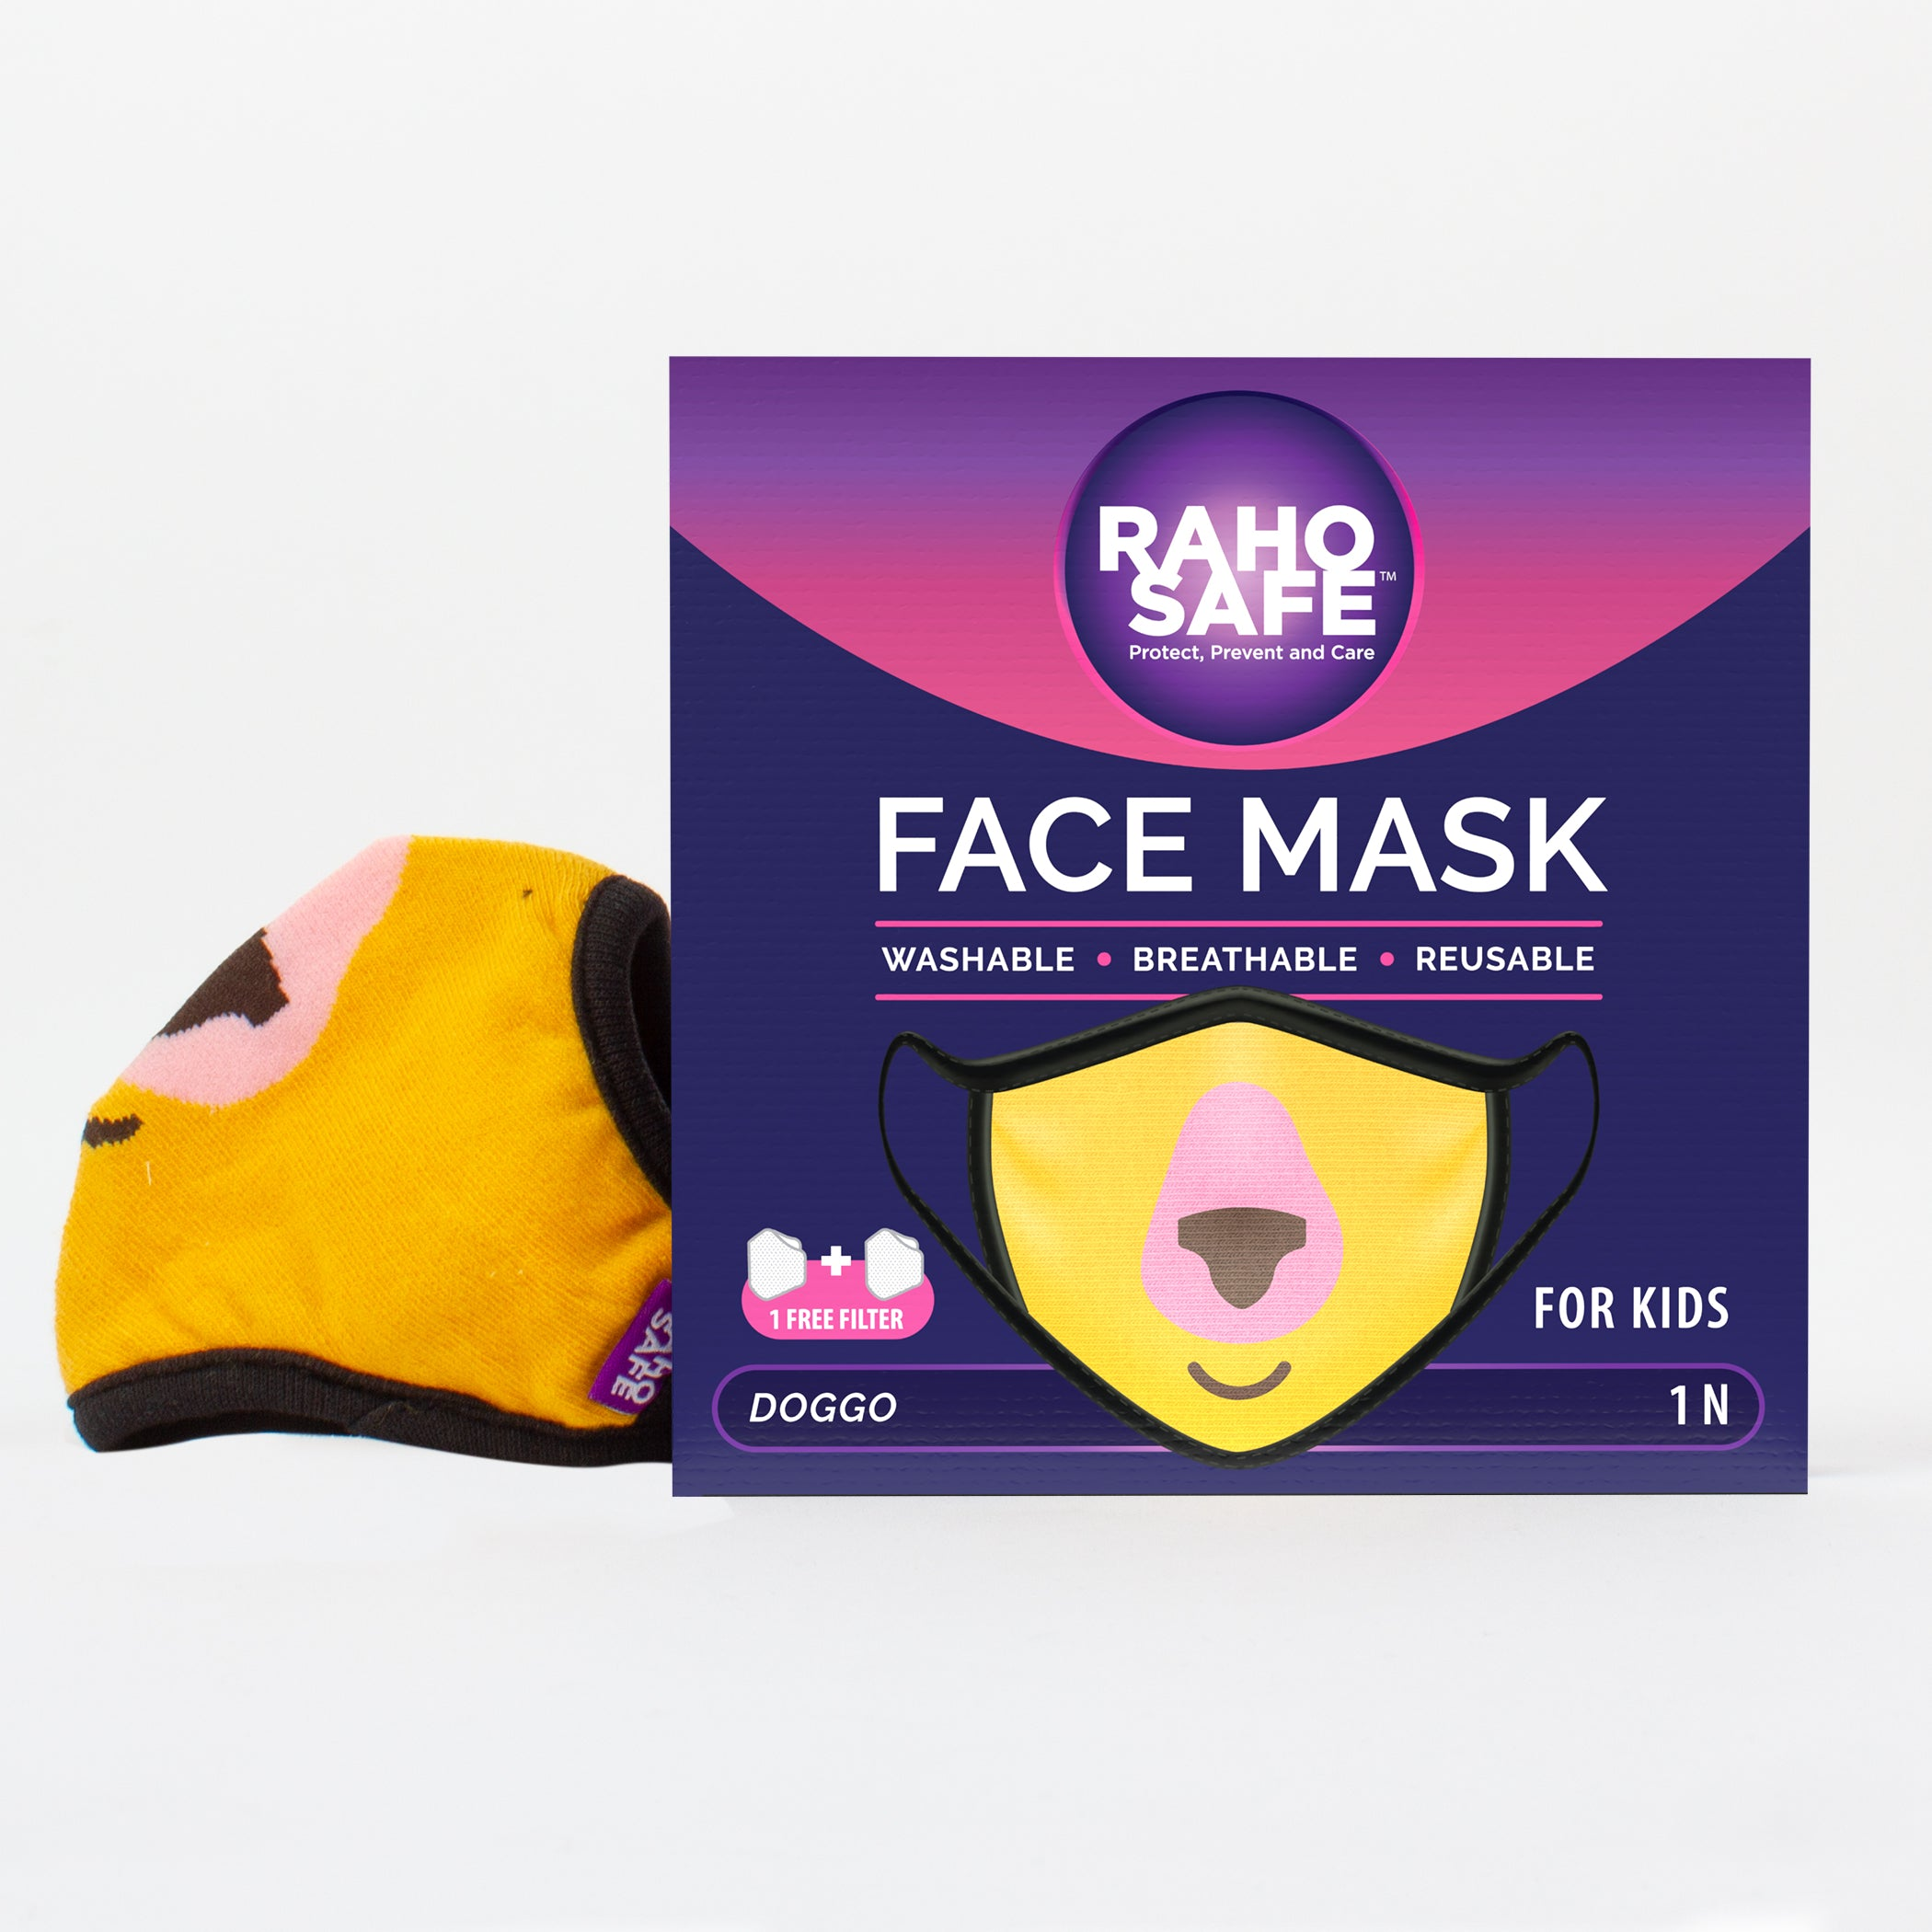 Doggo Face Mask for Kids